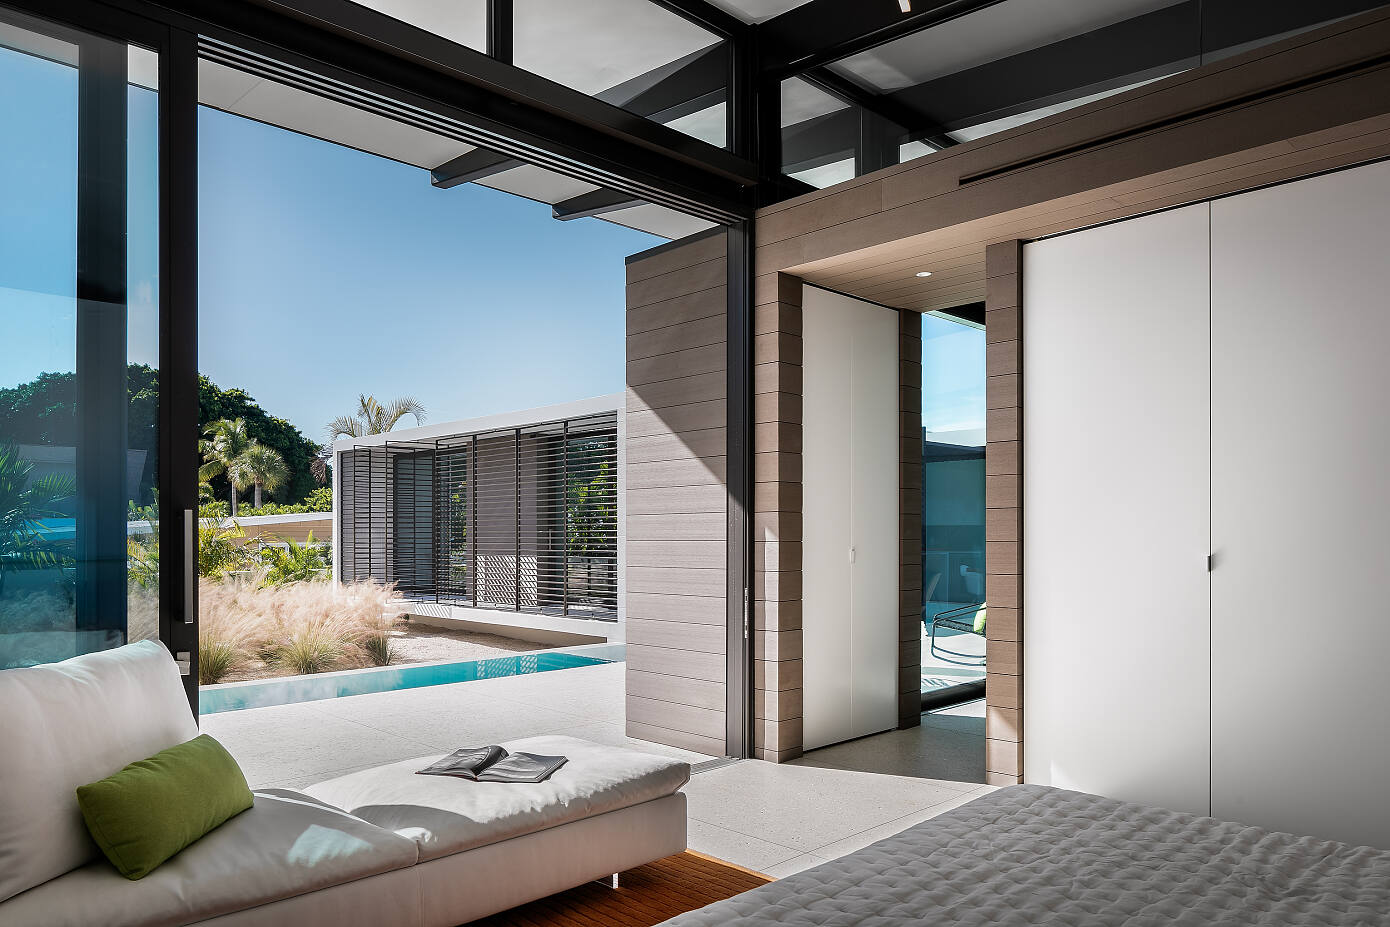 LS1 House by Hive Architects